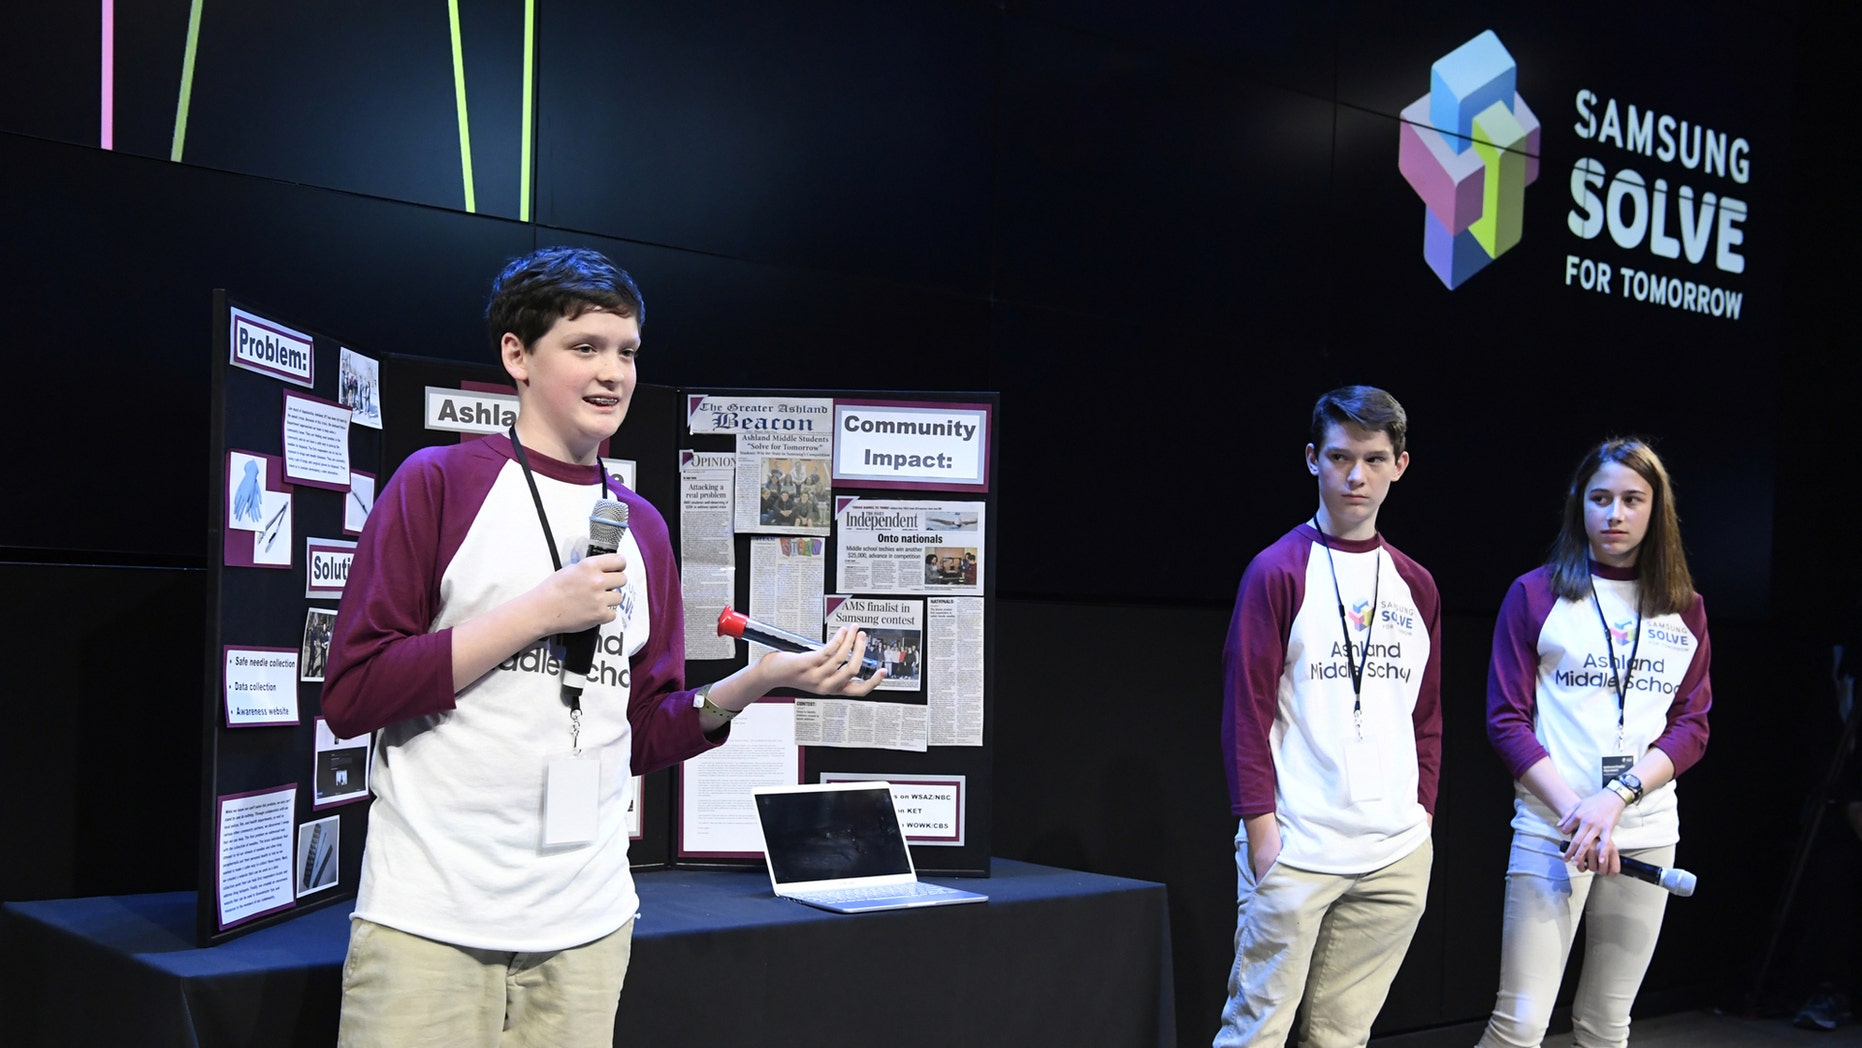 Students (left to right) Isaac Campbell, Caleb Campbell and Aubree Hay from Ashland Middle School in Ashland, KY present their STEAM project to a panel of judges at the Samsung Solve for Tomorrow national finalist pitch event on Monday, April 9, 2018 in New York City. The students created a device that allows first responders to safely collect hazardous hypodermic needles (Samsung)